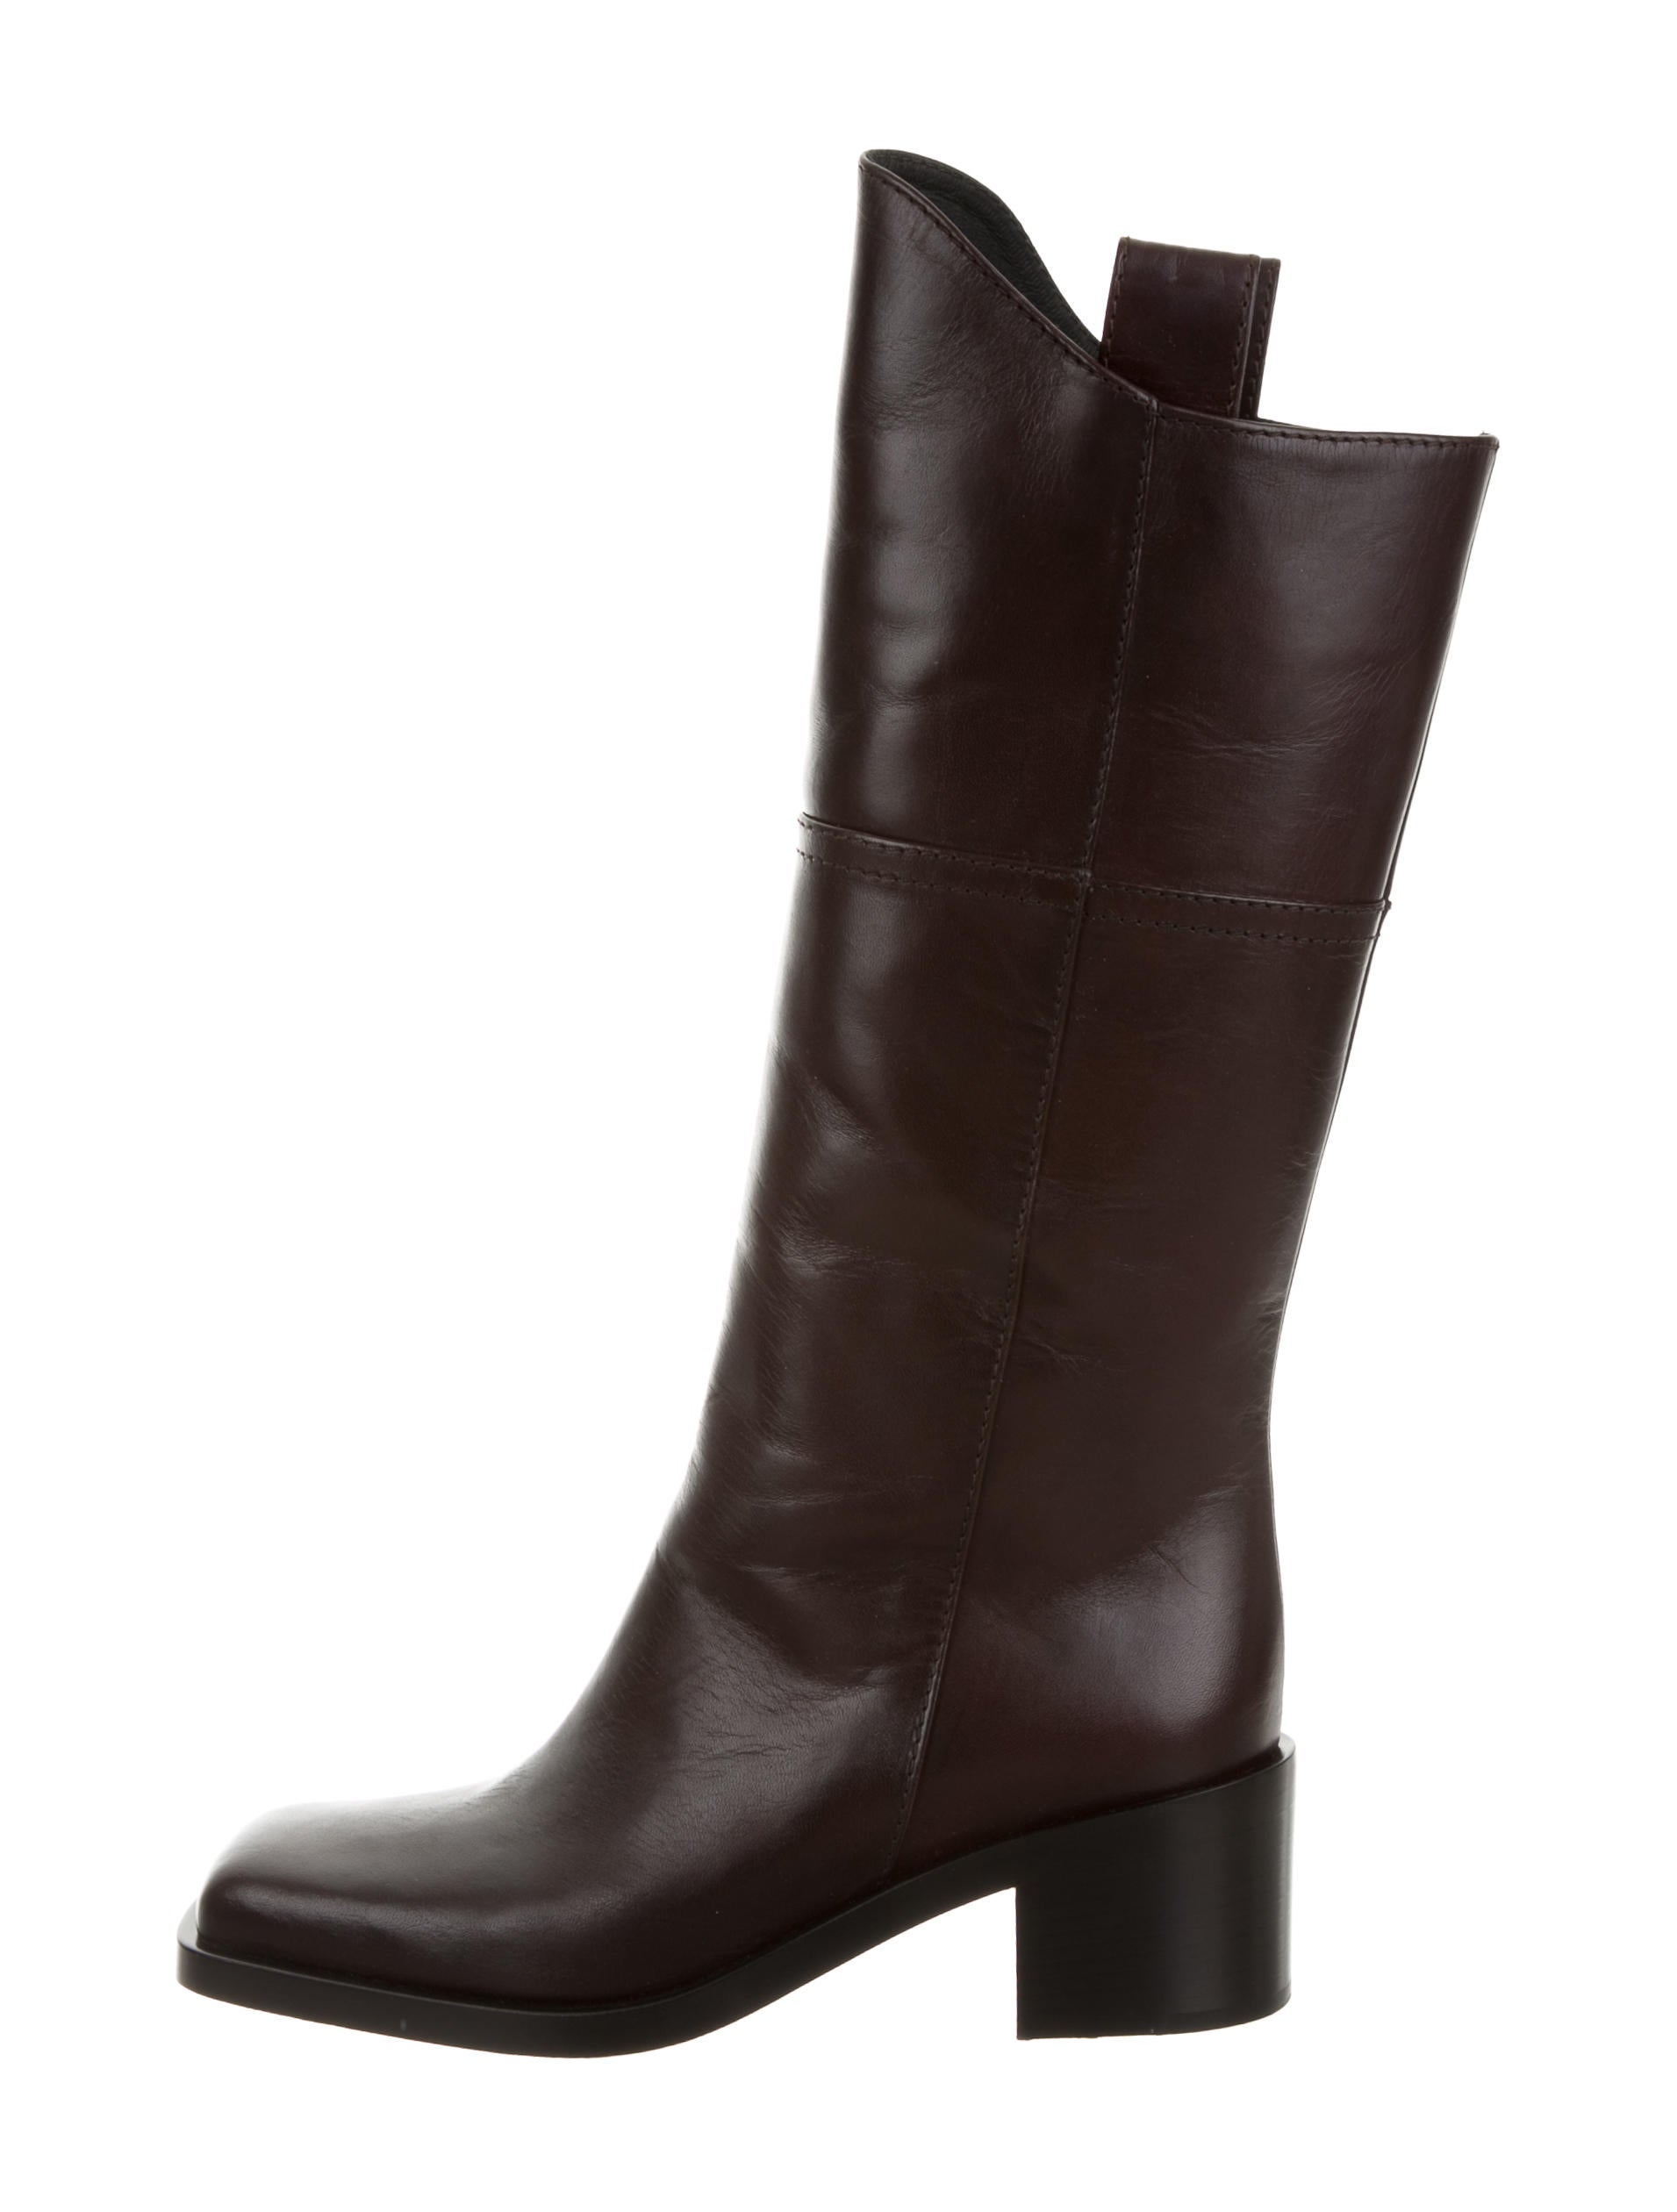 chanel leather mid calf boots shoes cha160047 the